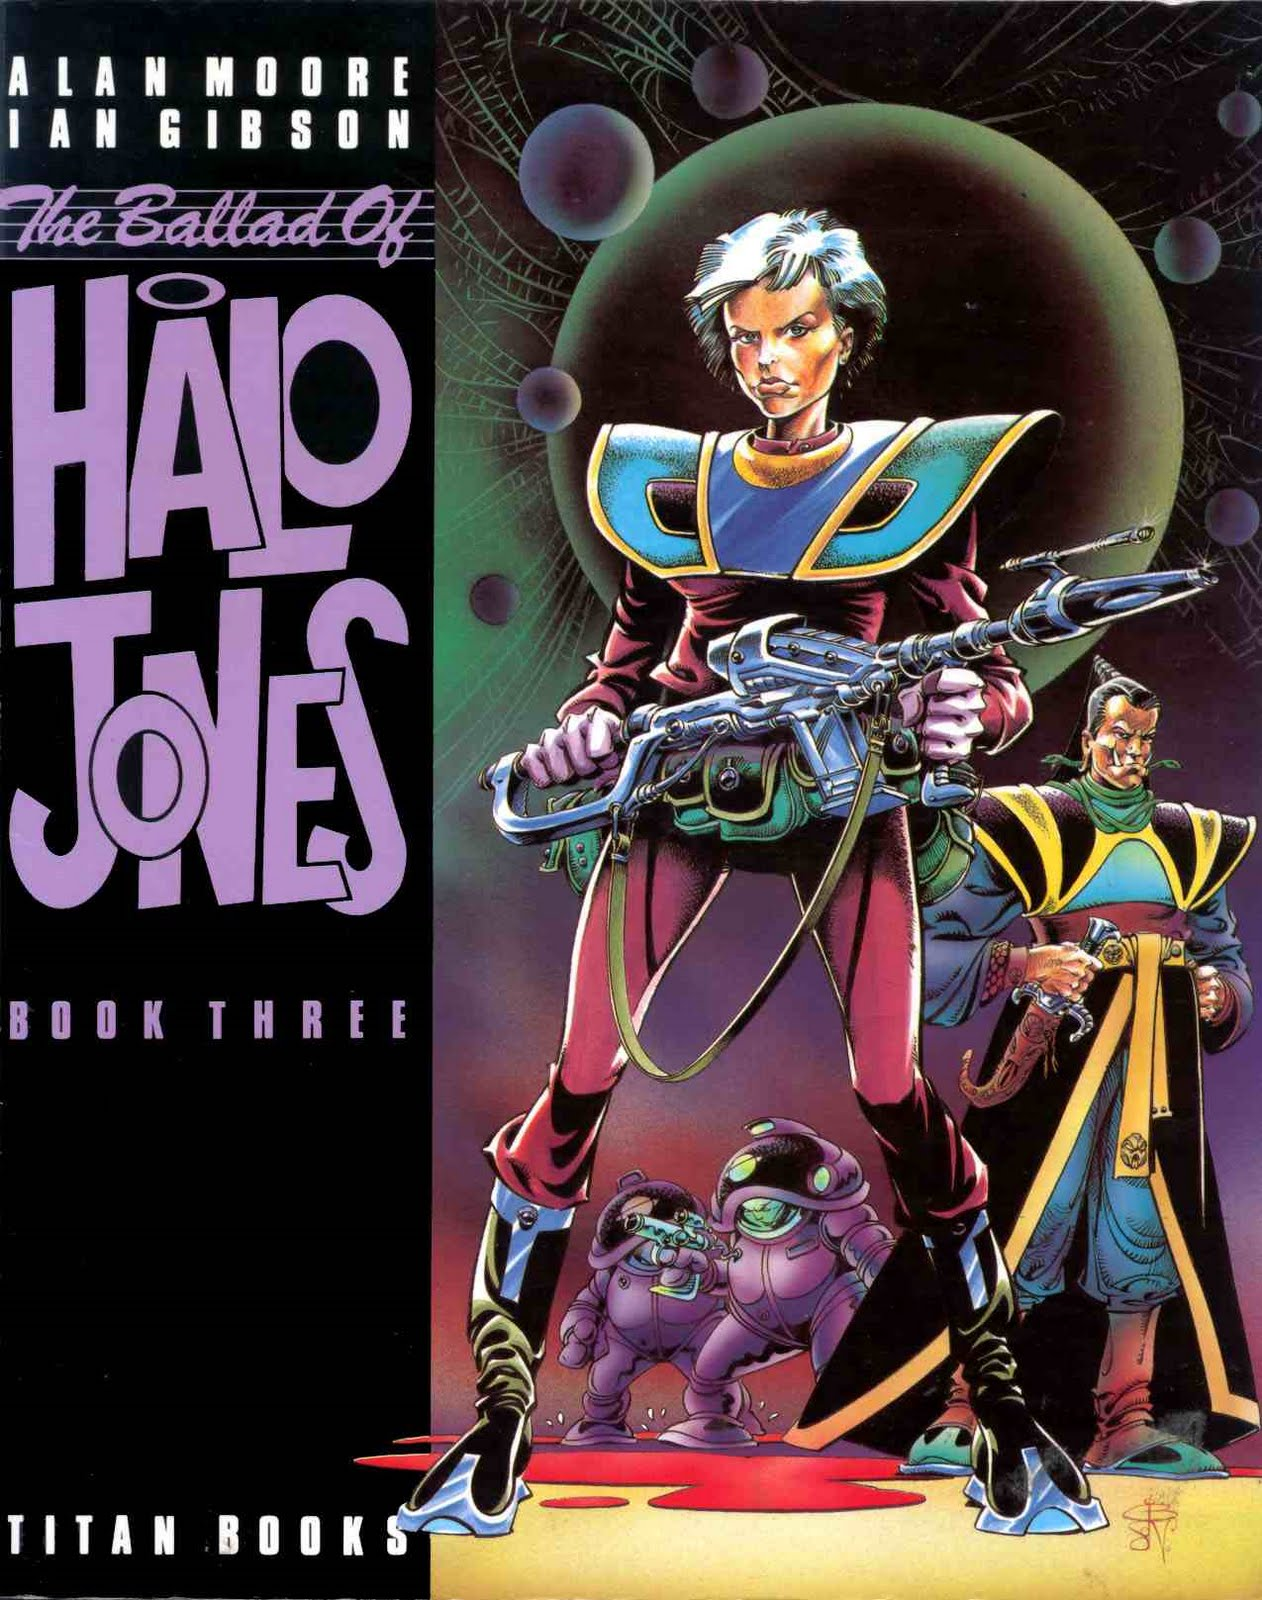 ballad-of-halo-jones-book-3 (1)